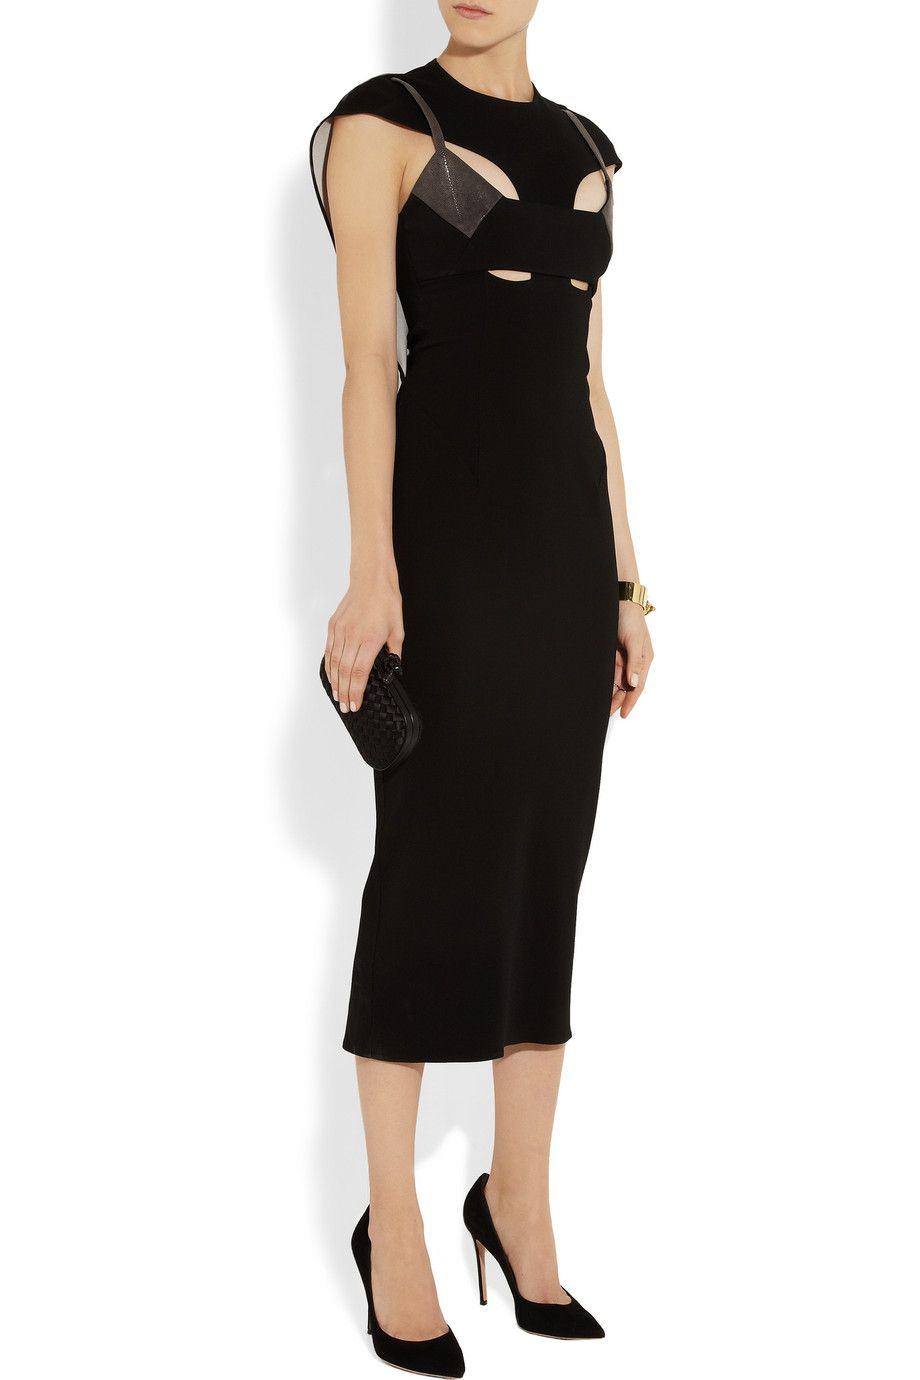 8522298433 OBSESSED with this number worn by Toni Collette at the